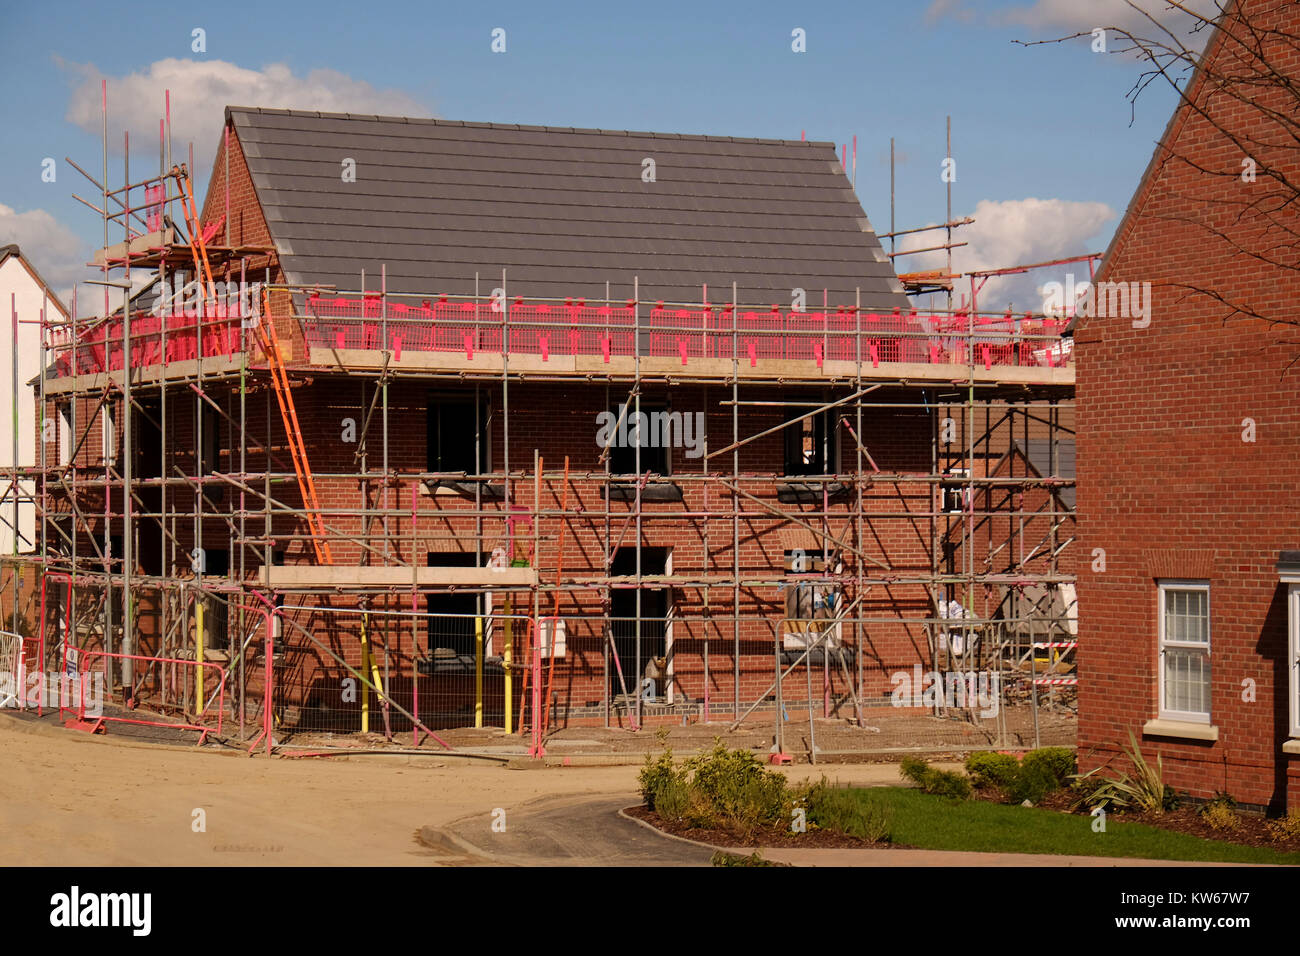 New house covered in scaffolding, Grantham, Lincolnshire, England, UK - Stock Image